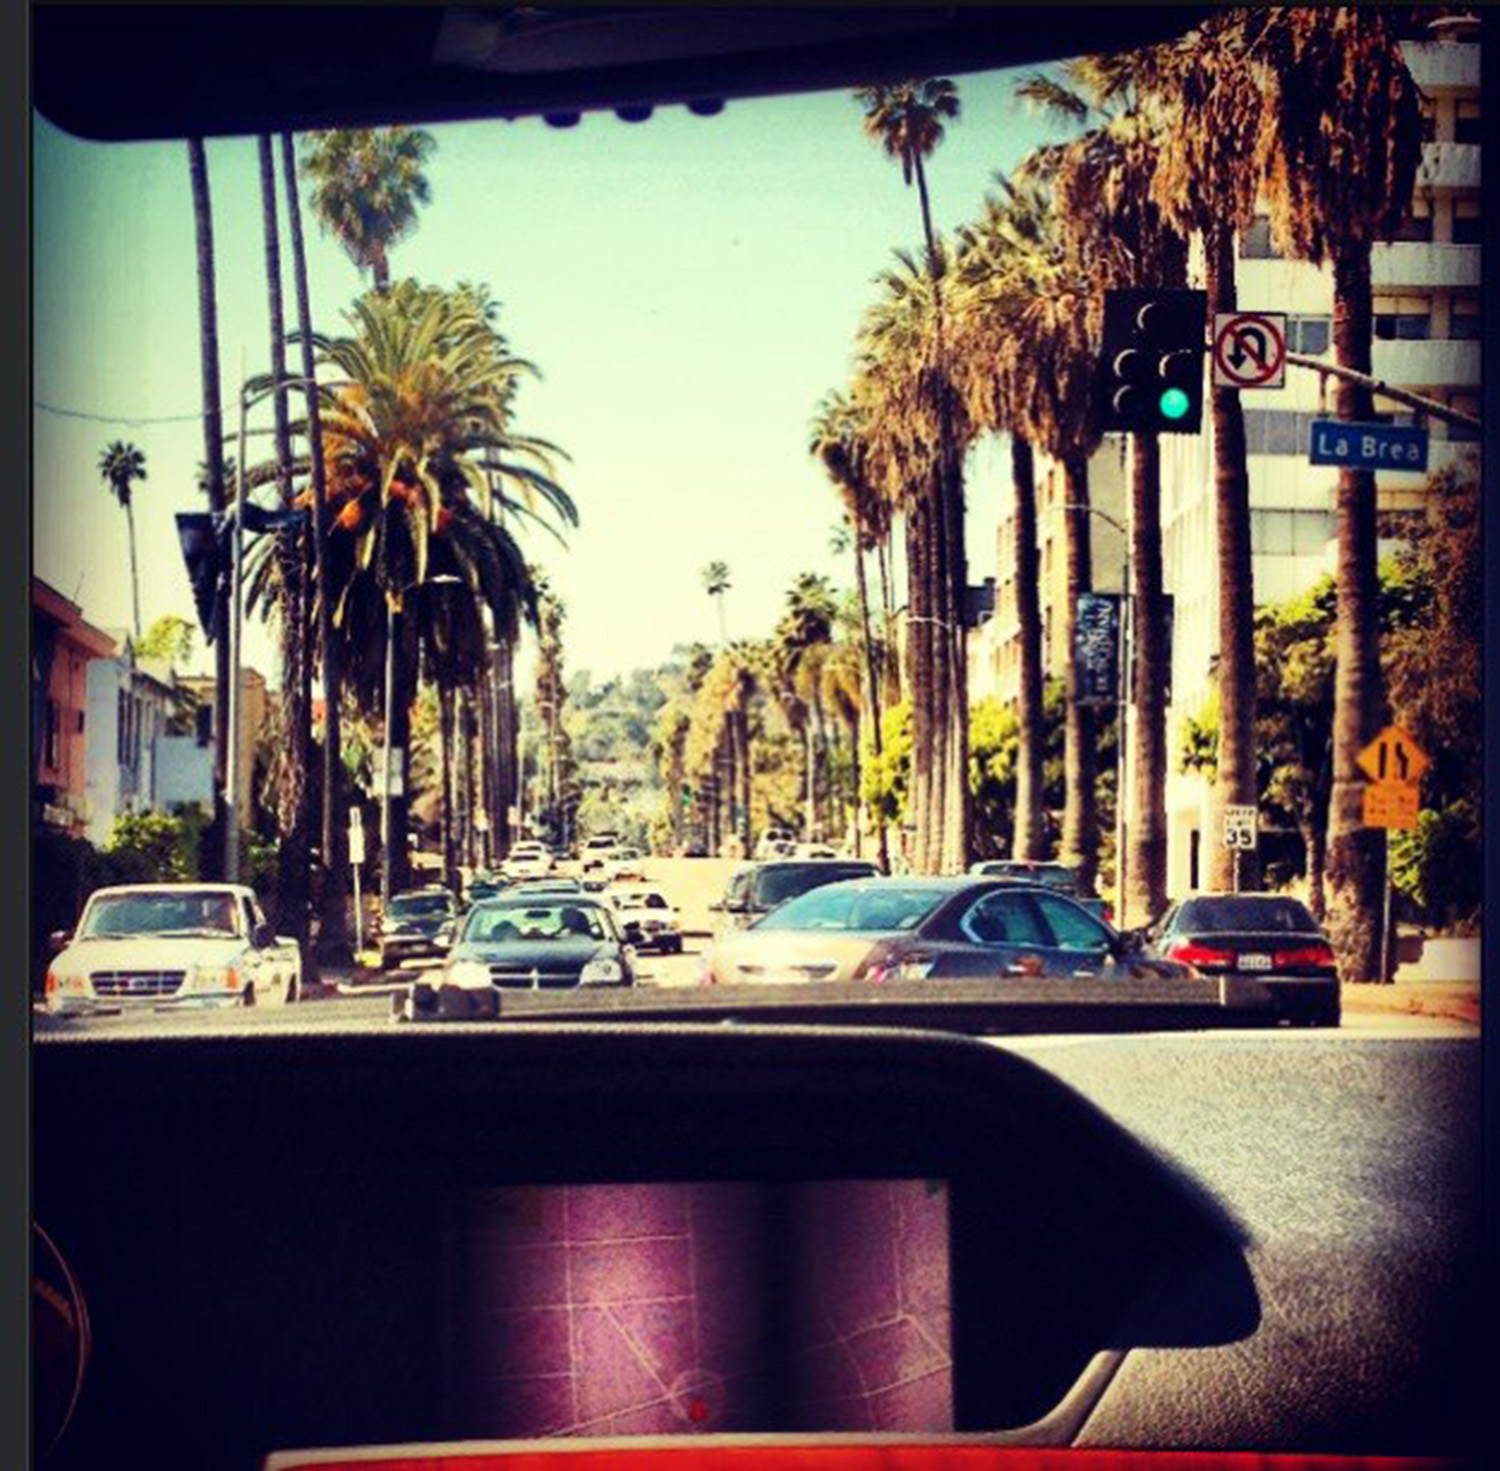 Busy streets and palm trees in La Brea, March 2013